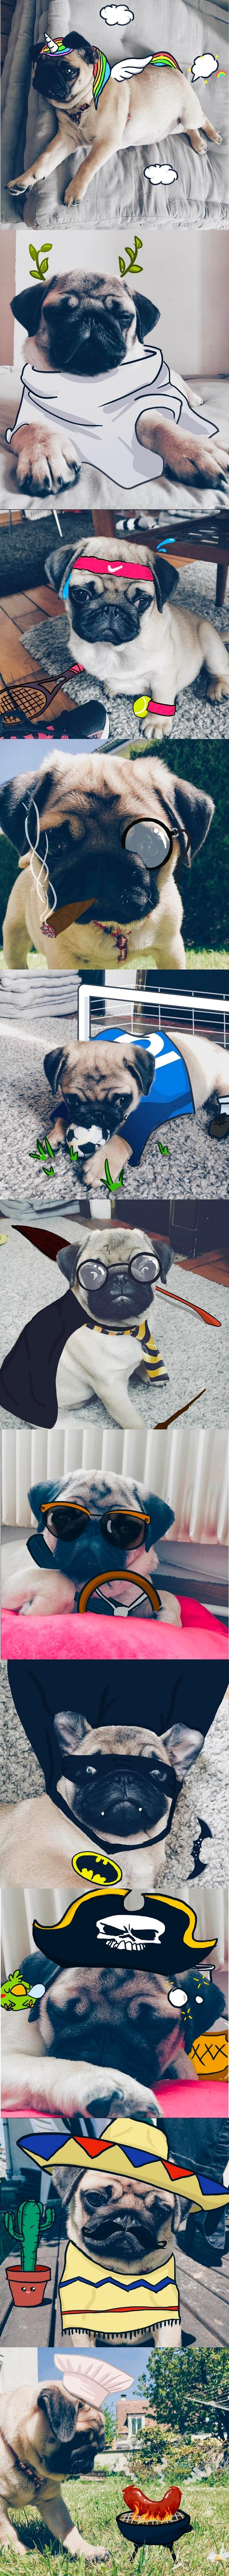 So my GF and I just got a pug aaaand we might have been drawing on his cute little face :)